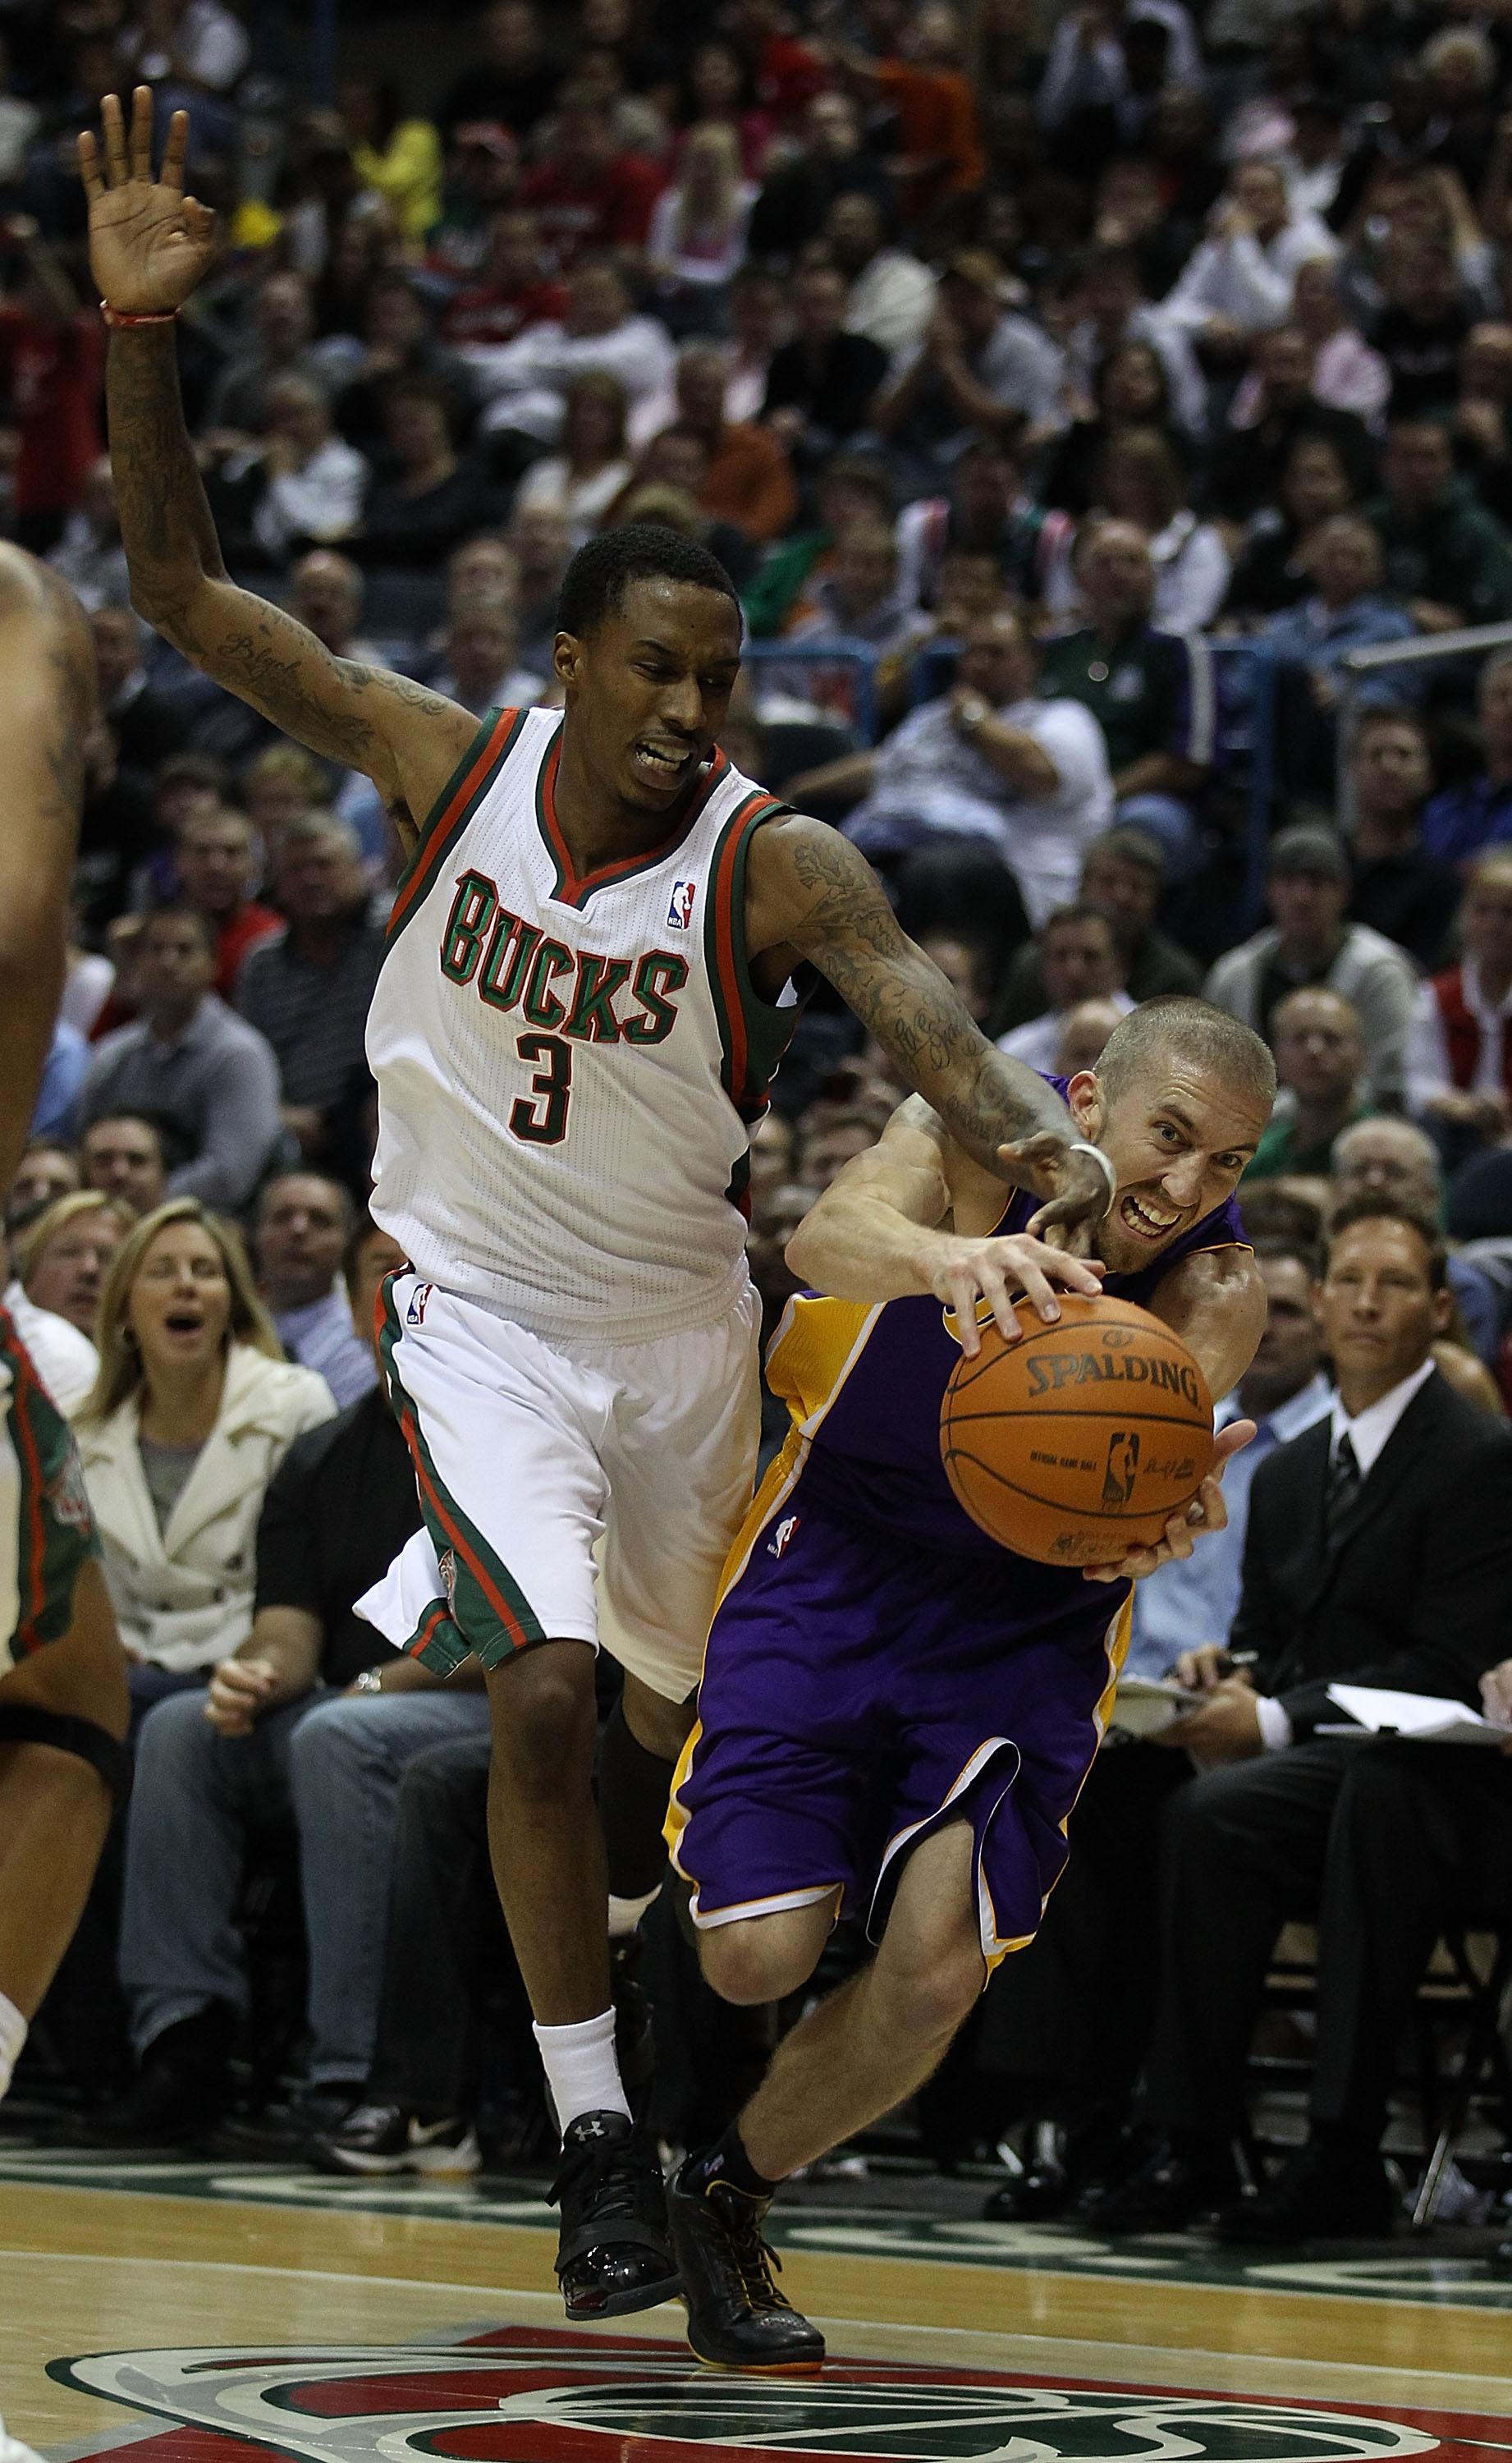 MILWAUKEE - NOVEMBER 16: Brandon Jennings #3 of the Milwaukee Bucks and Steve Blake #5 of the Los Angeles Lakers battle for a loose ball at the Bradley Center on November 16, 2010 in Milwaukee, Wisconsin. The Lakers defeated the Bucks 118-107. NOTE TO USE